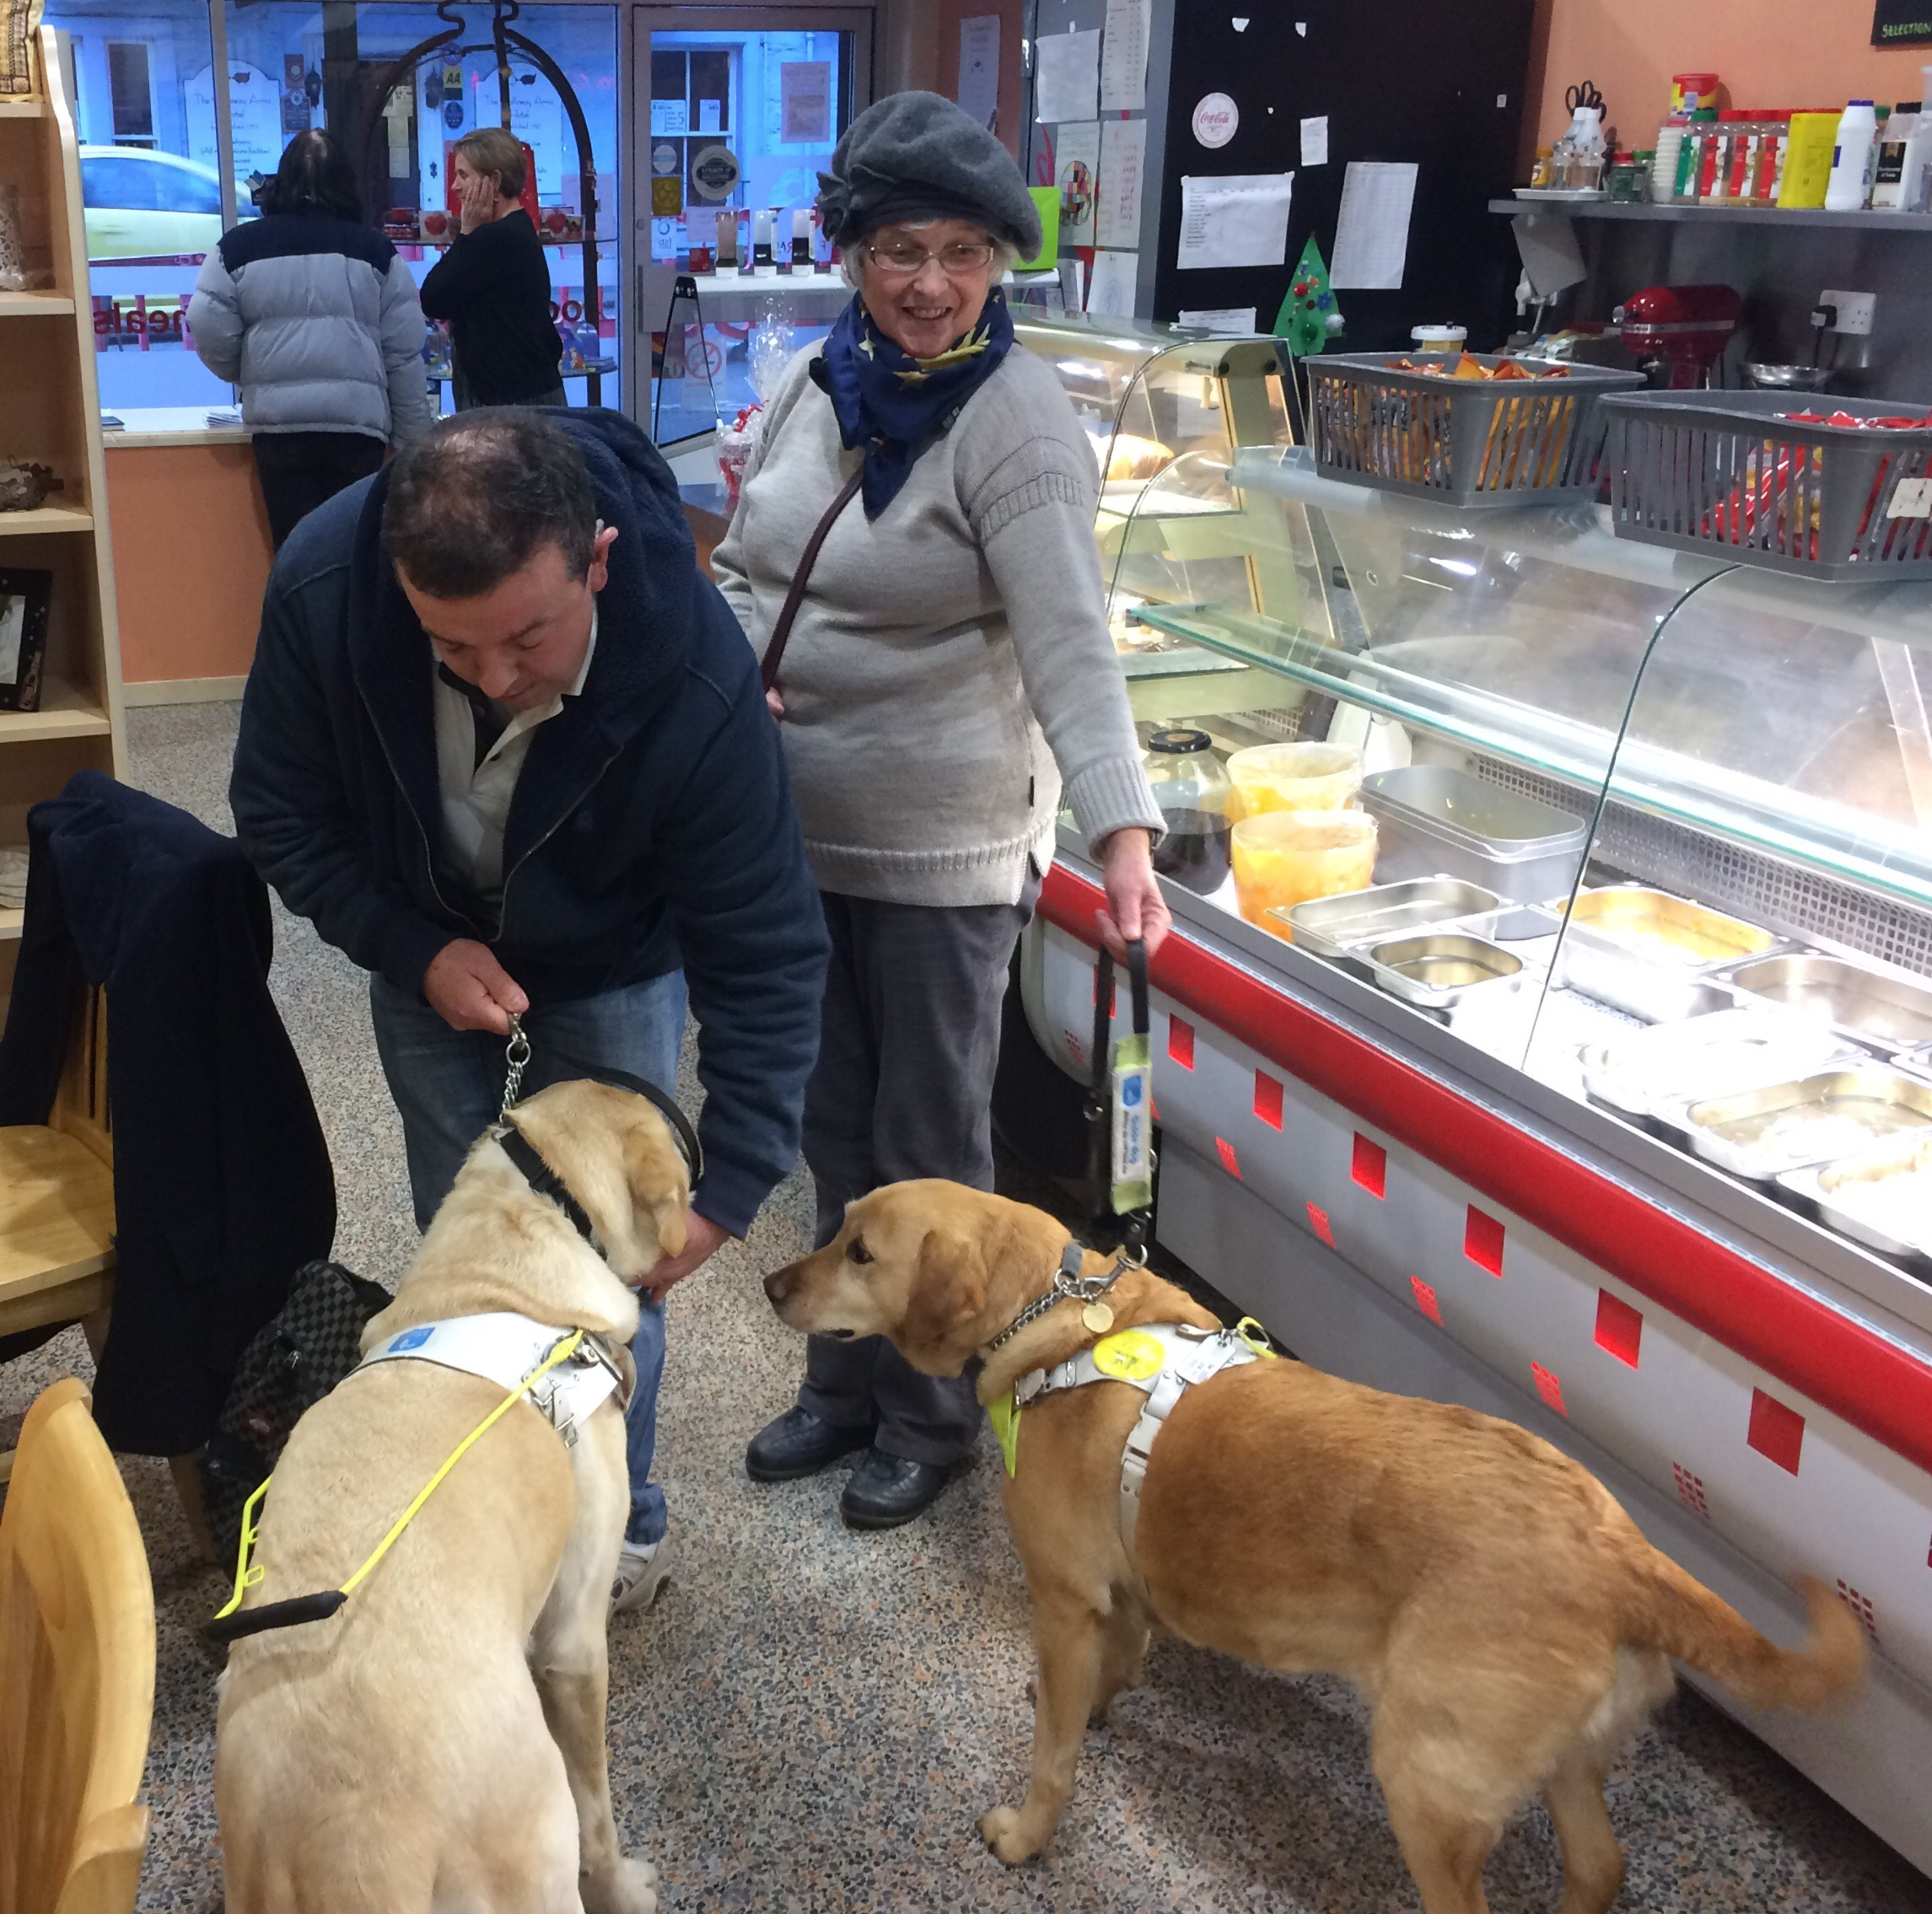 A group of people in a cafe with a guide dog